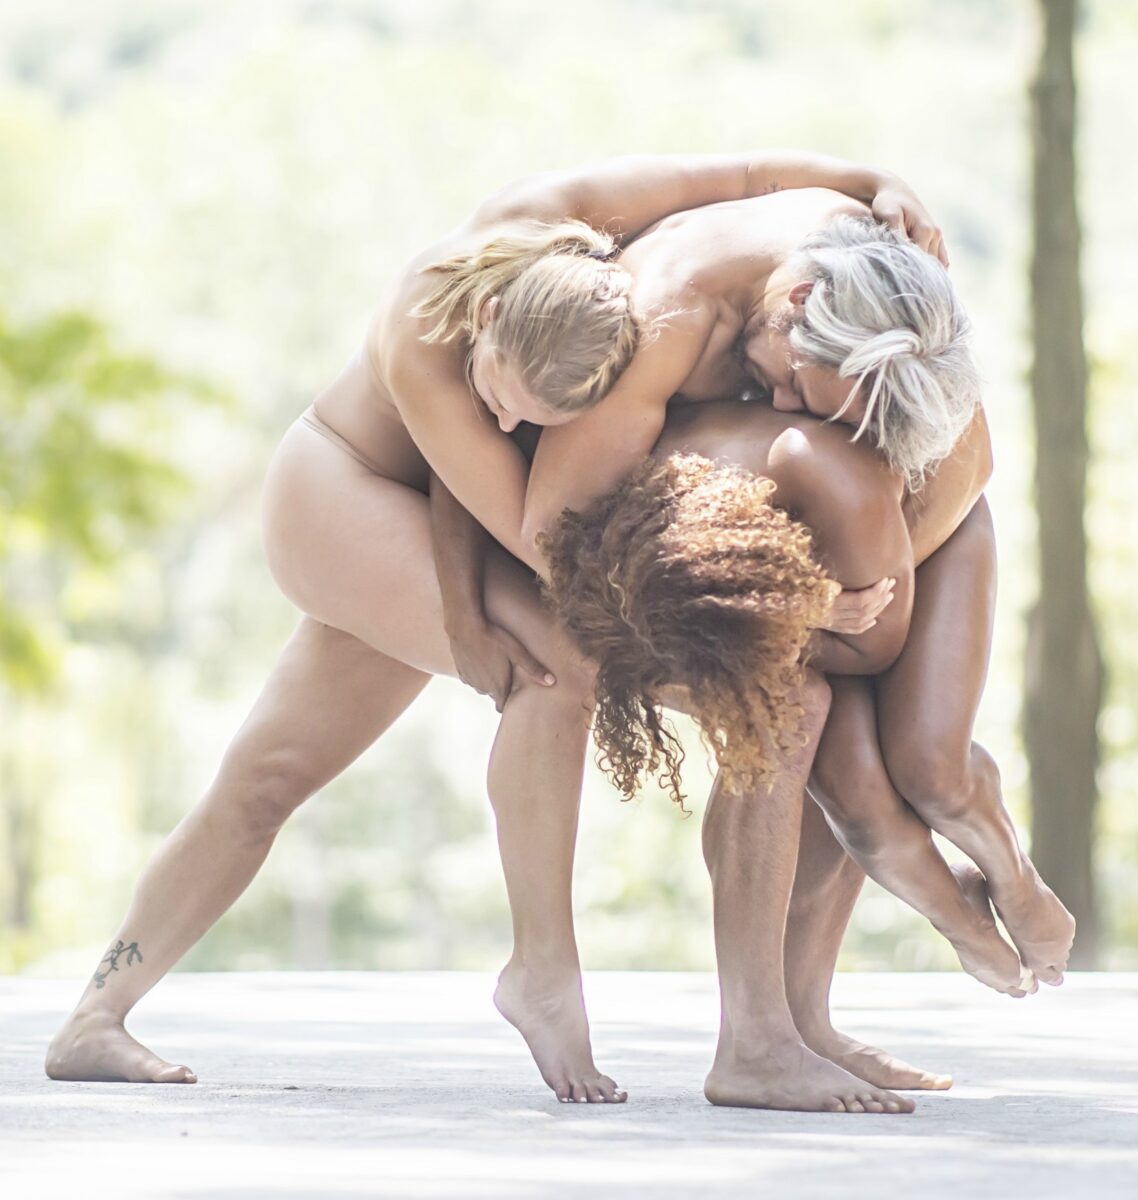 Three people nude a curled in a ball together on stage, in nature.